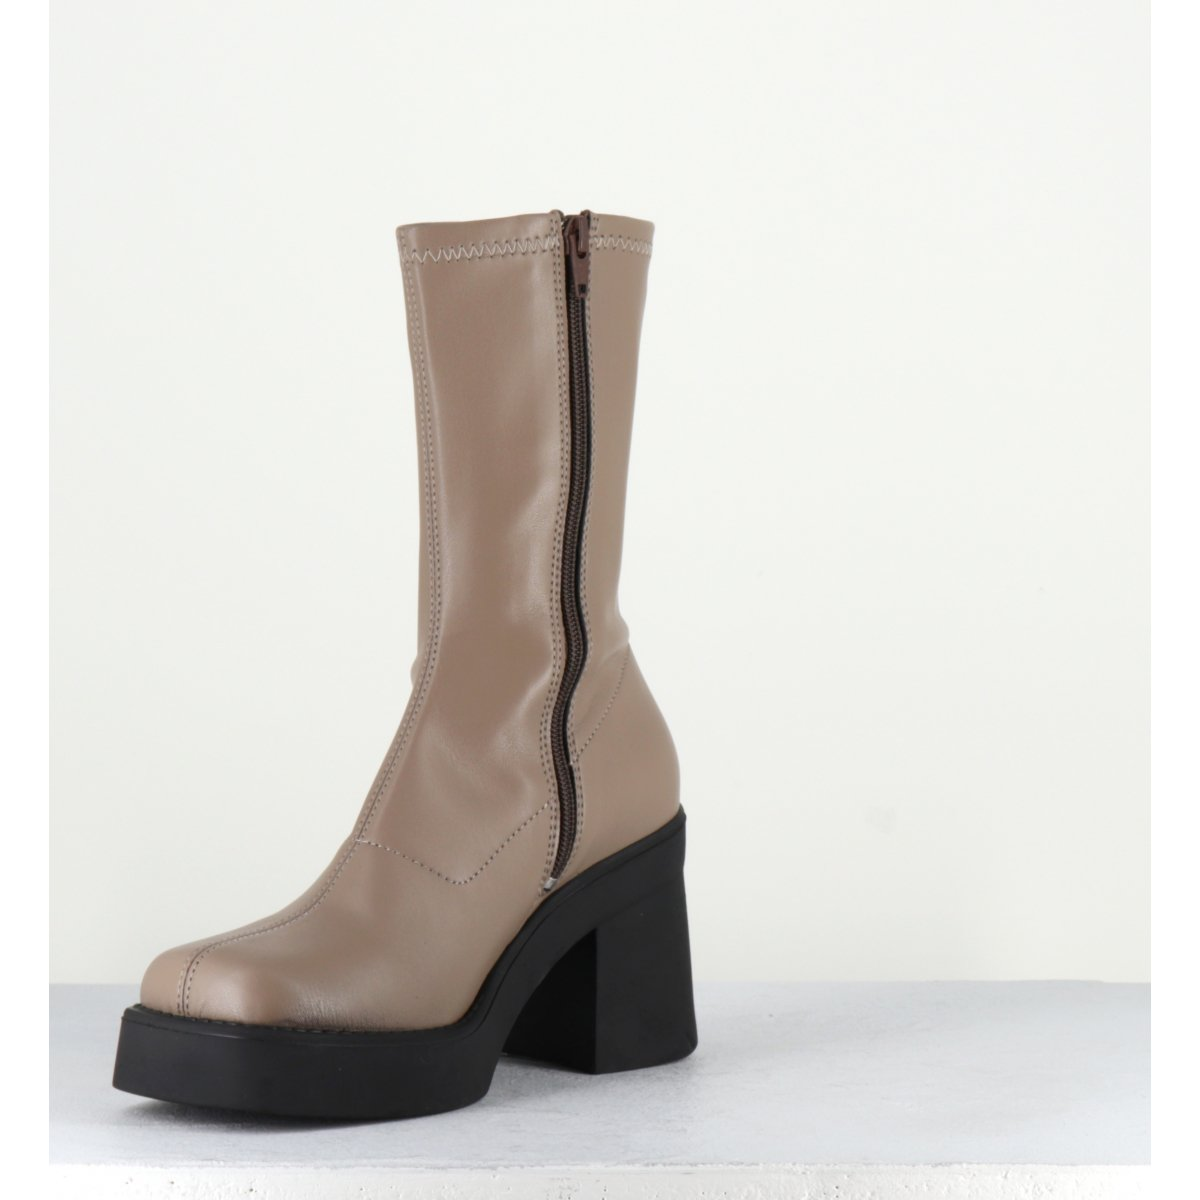 Boots stretch taupes à plateformes - NOELY TAUPE STRETCH